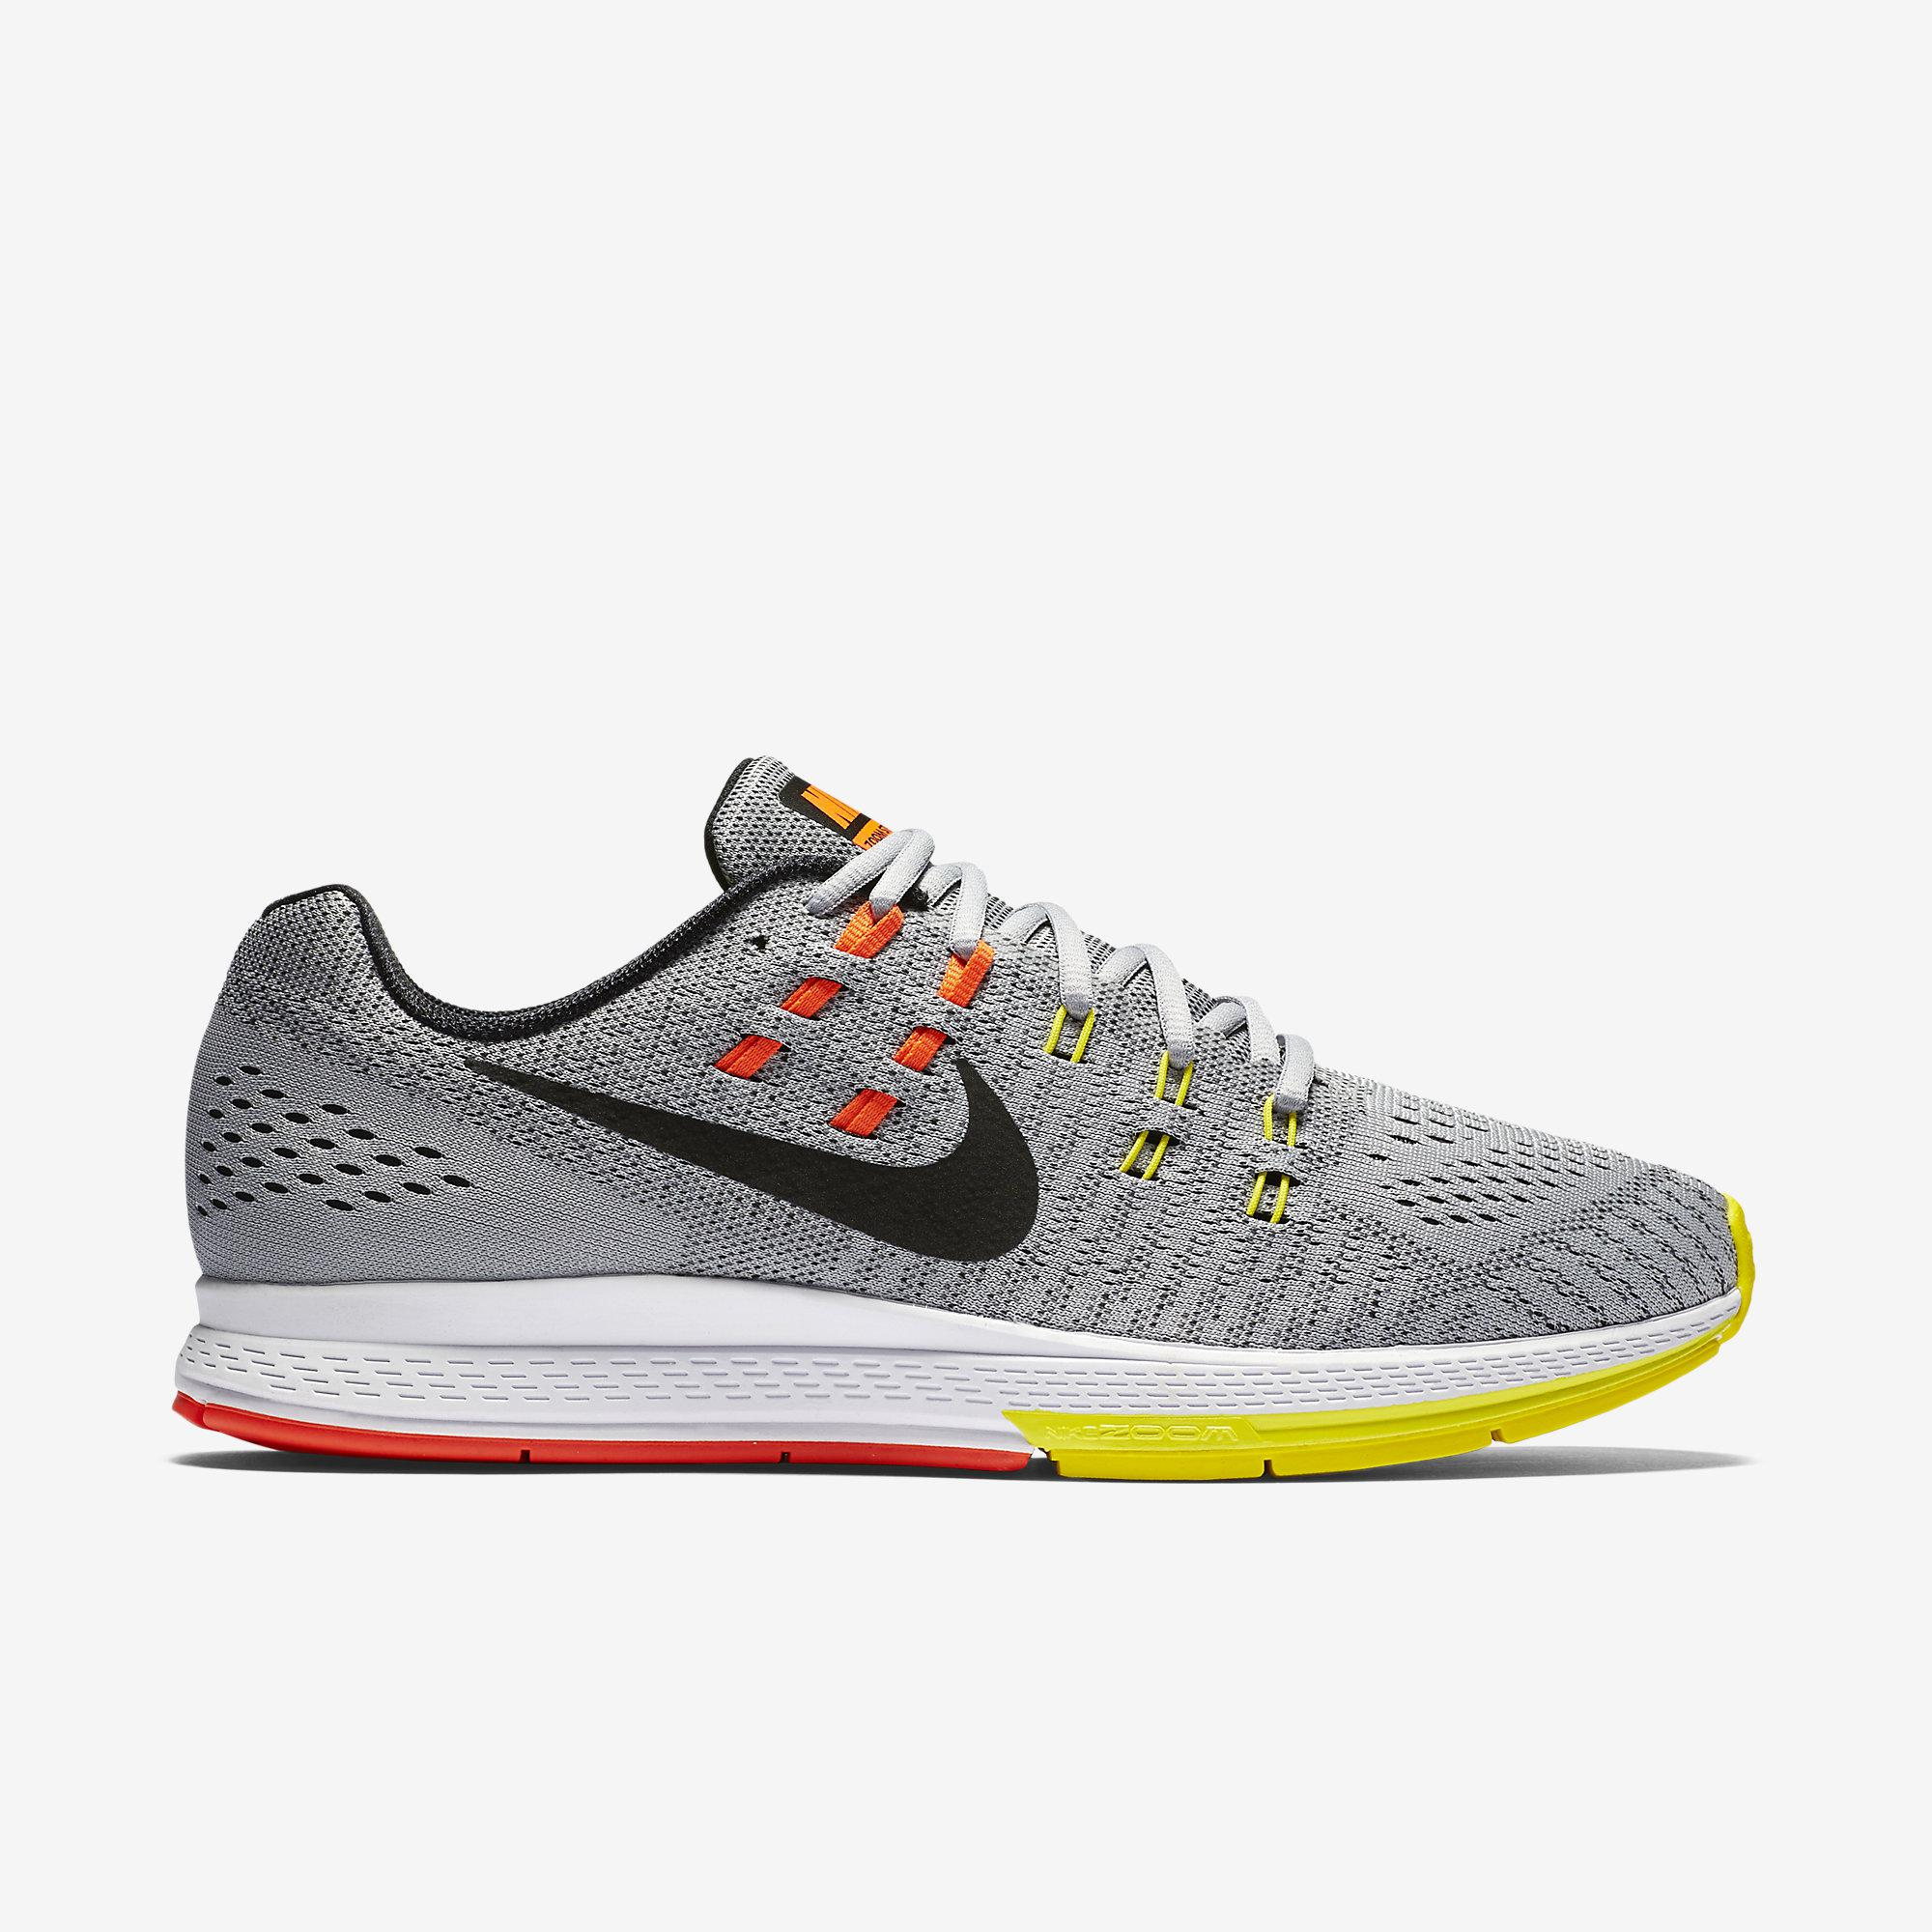 828cca5aa5b Nike Mens Air Zoom Structure 19 Running Shoes - Grey Yellow - Tennisnuts.com